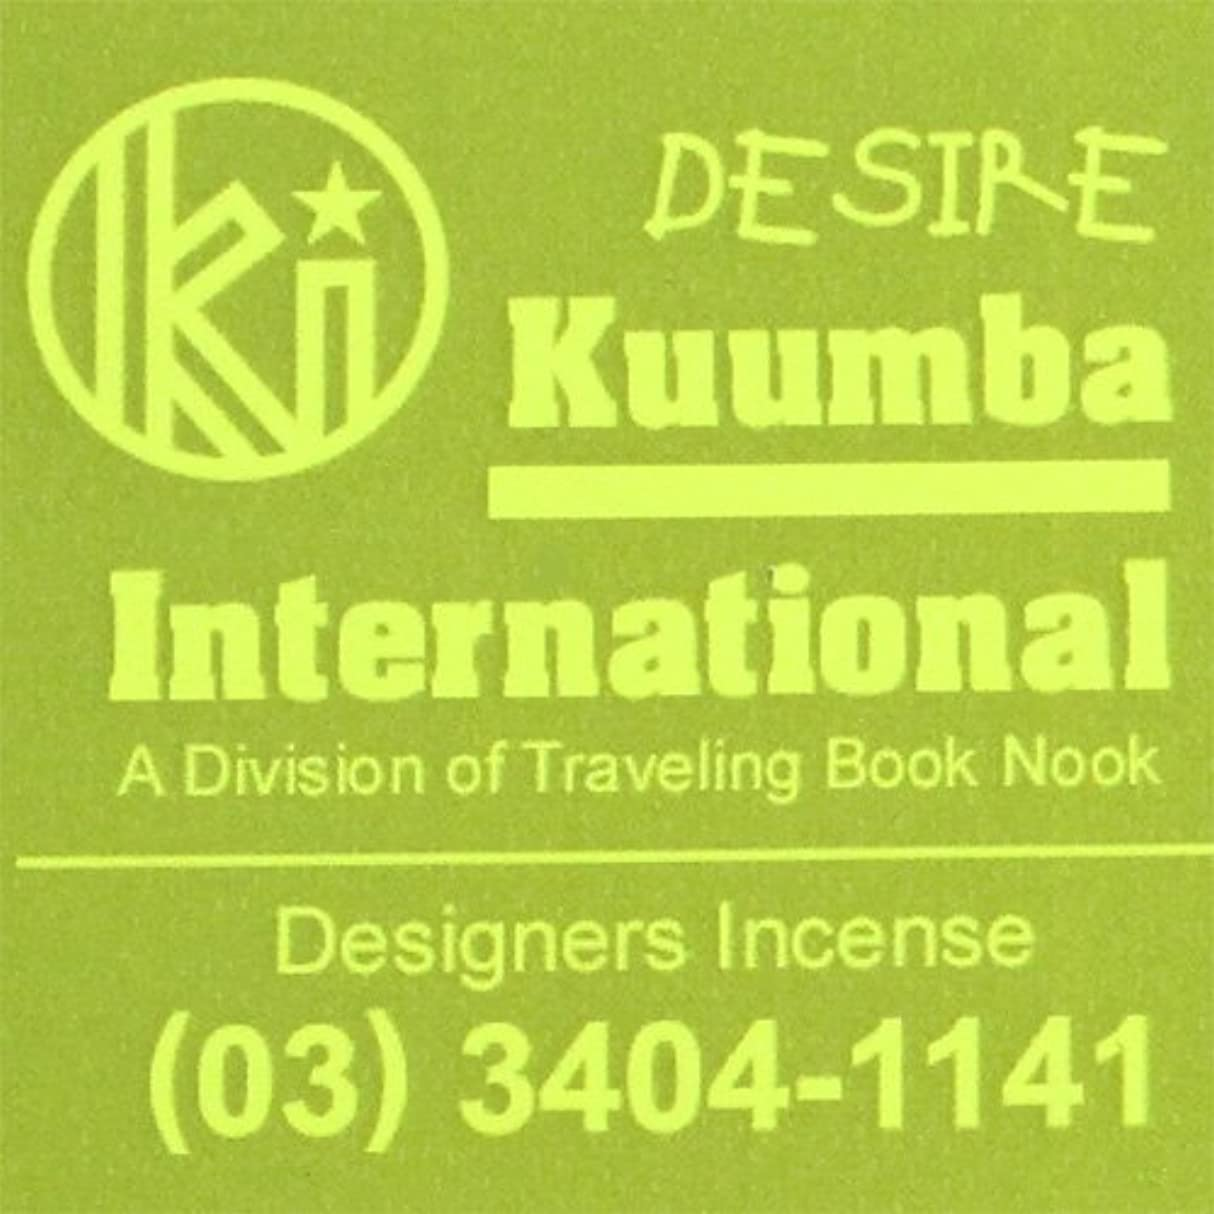 検出理容師機転(クンバ) KUUMBA『classic regular incense』(DESIRE) (Regular size)